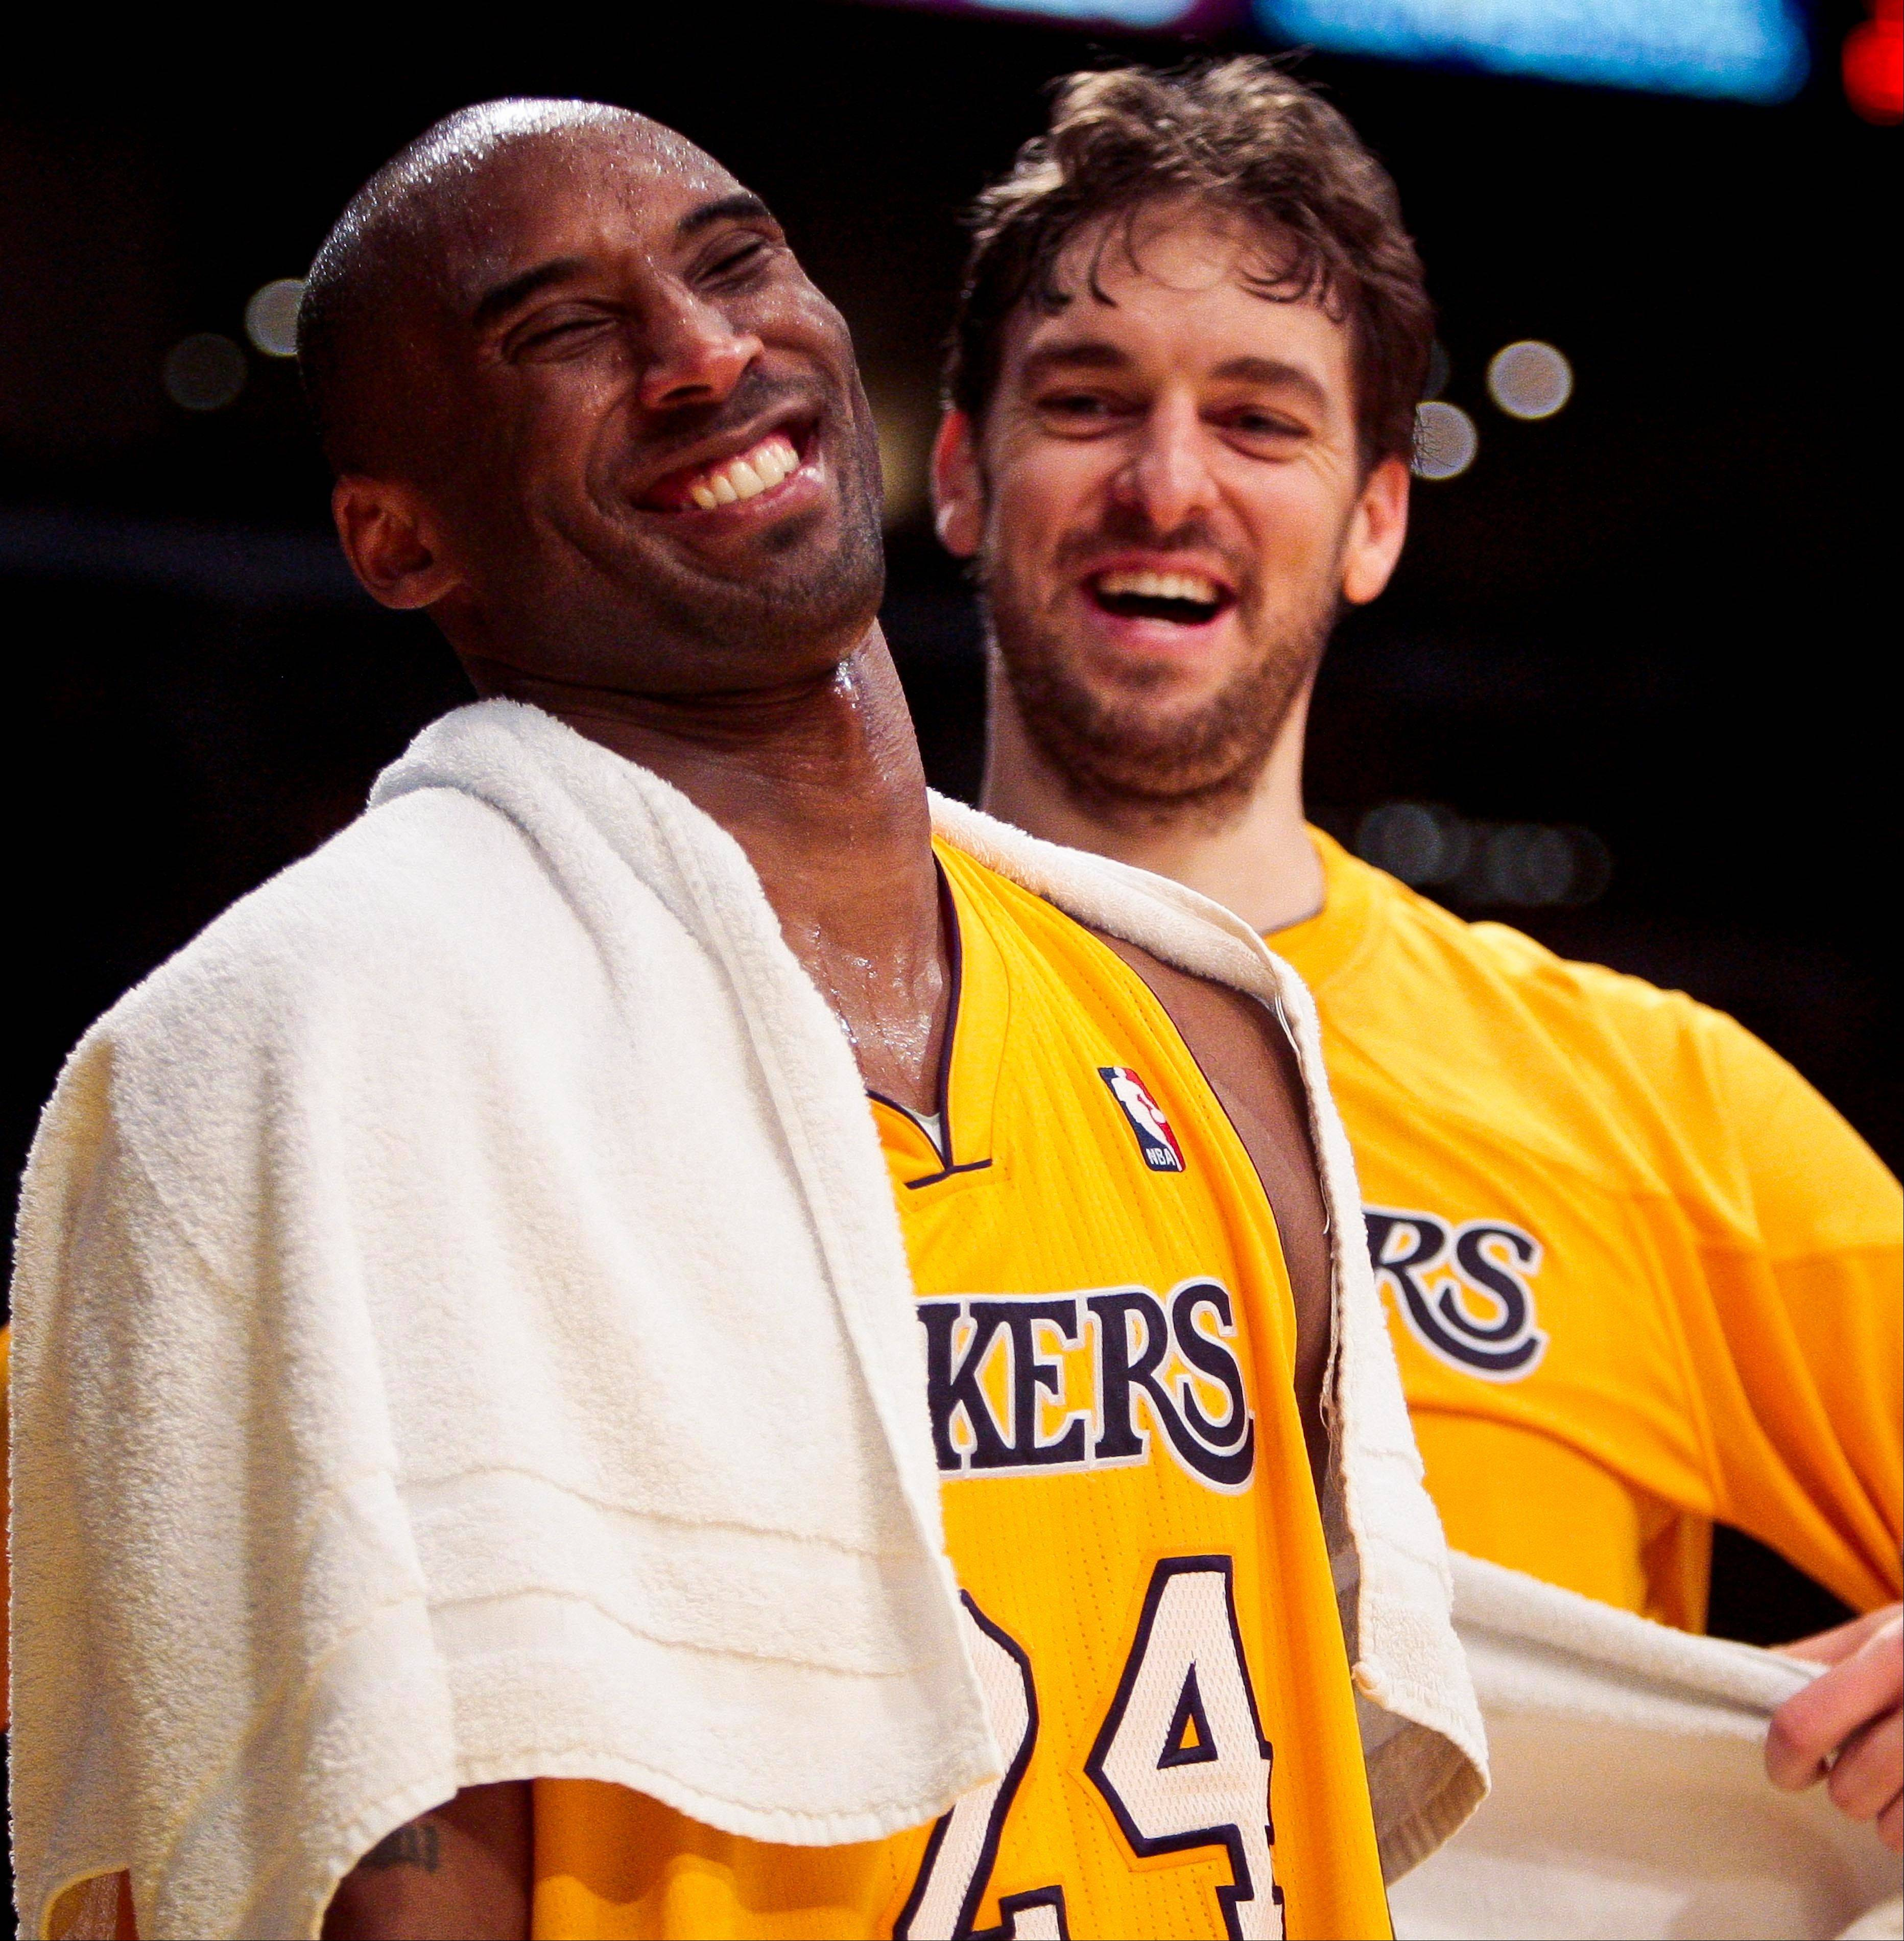 Kobe Bryant, left, said the Lakers should either trade Pau Gasol, right, and get it over with, or announce that Gasol is staying.